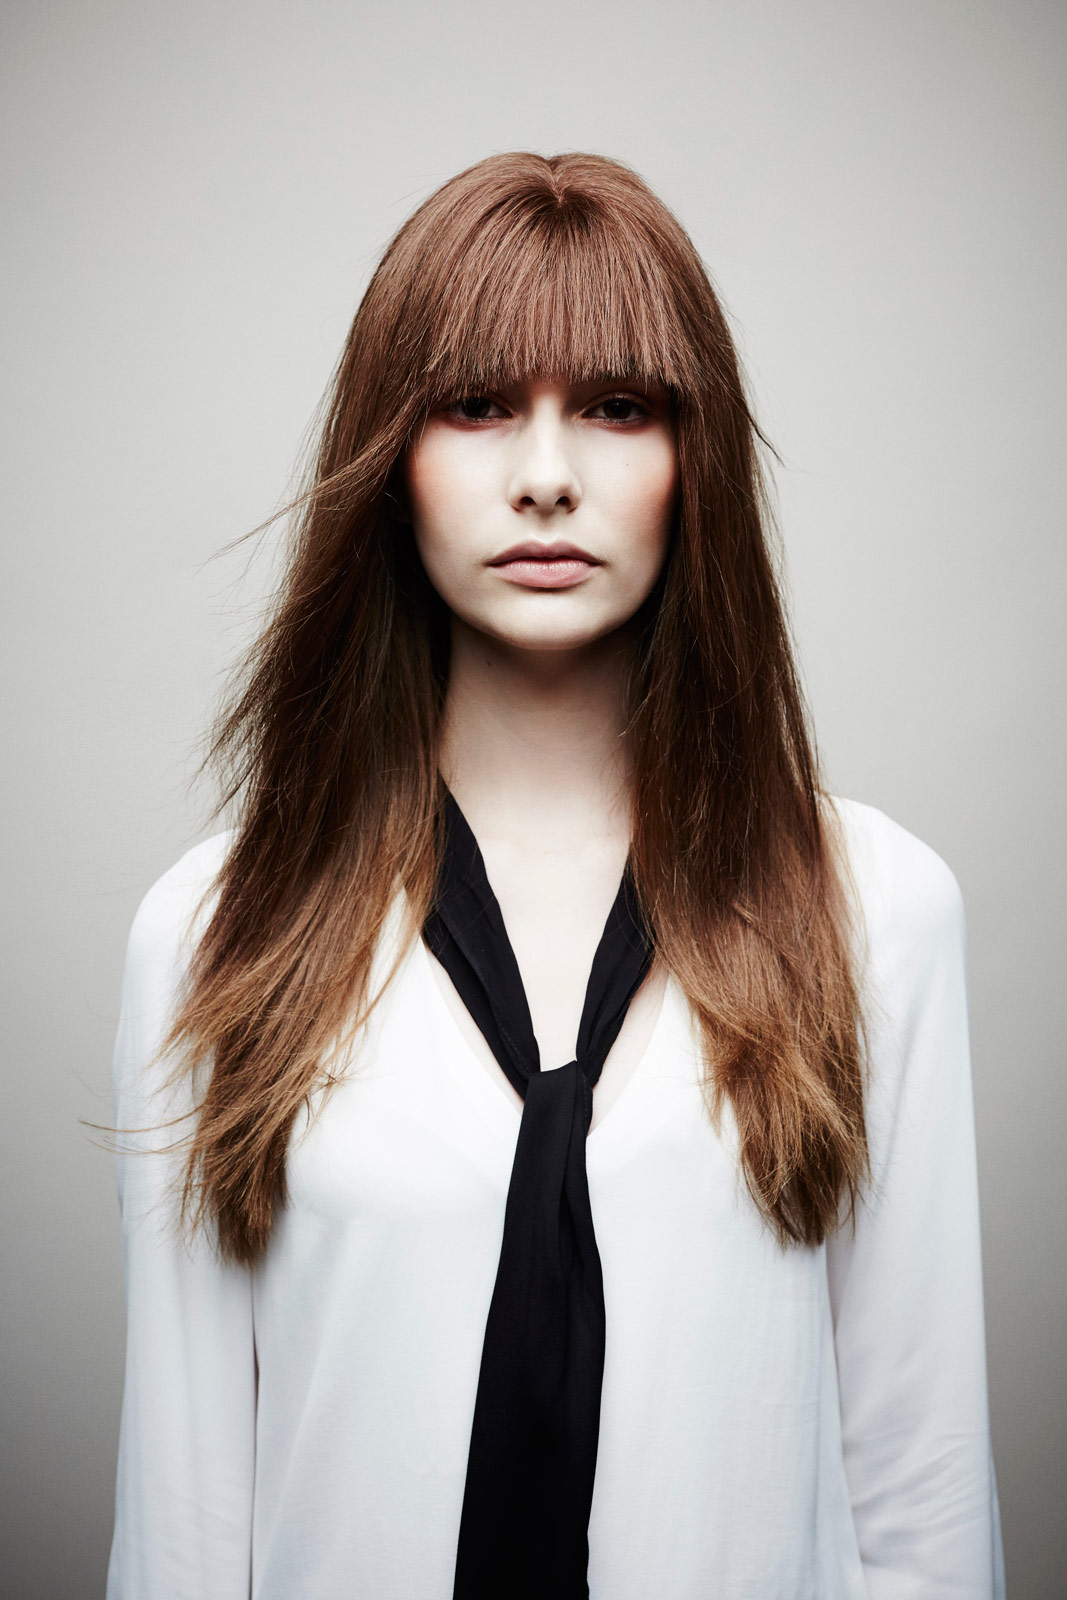 Hair Overhaul At Hari's - One of London's Most Celebrated Salons 4